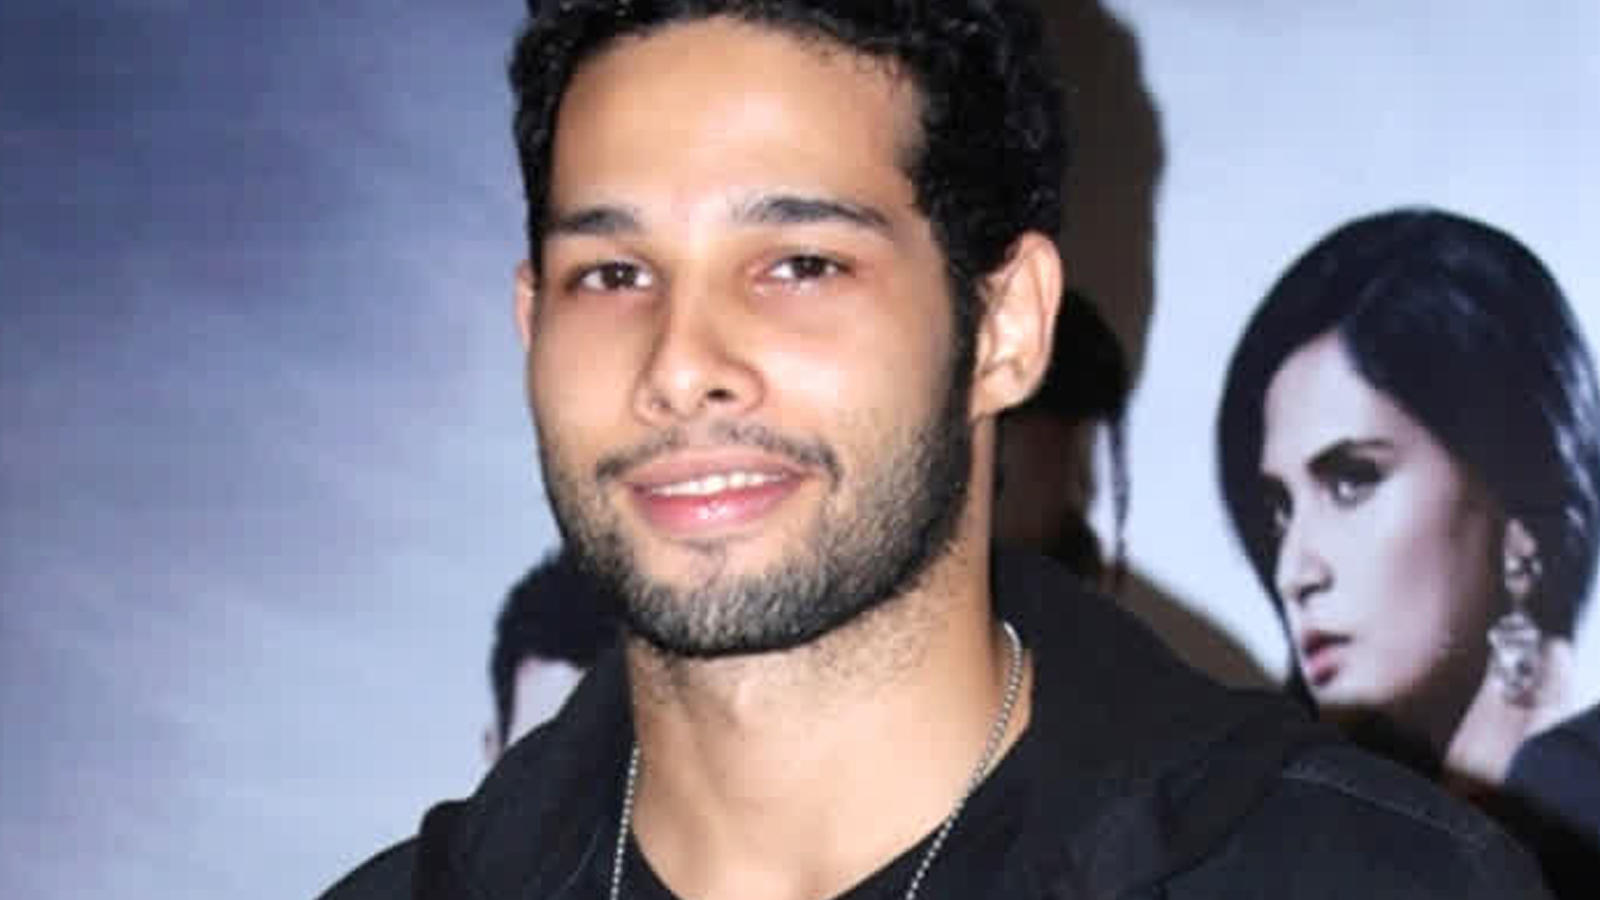 Siddhant Chaturvedi's savage reply to Ananya Panday's nepotism comment sparks memes on internet